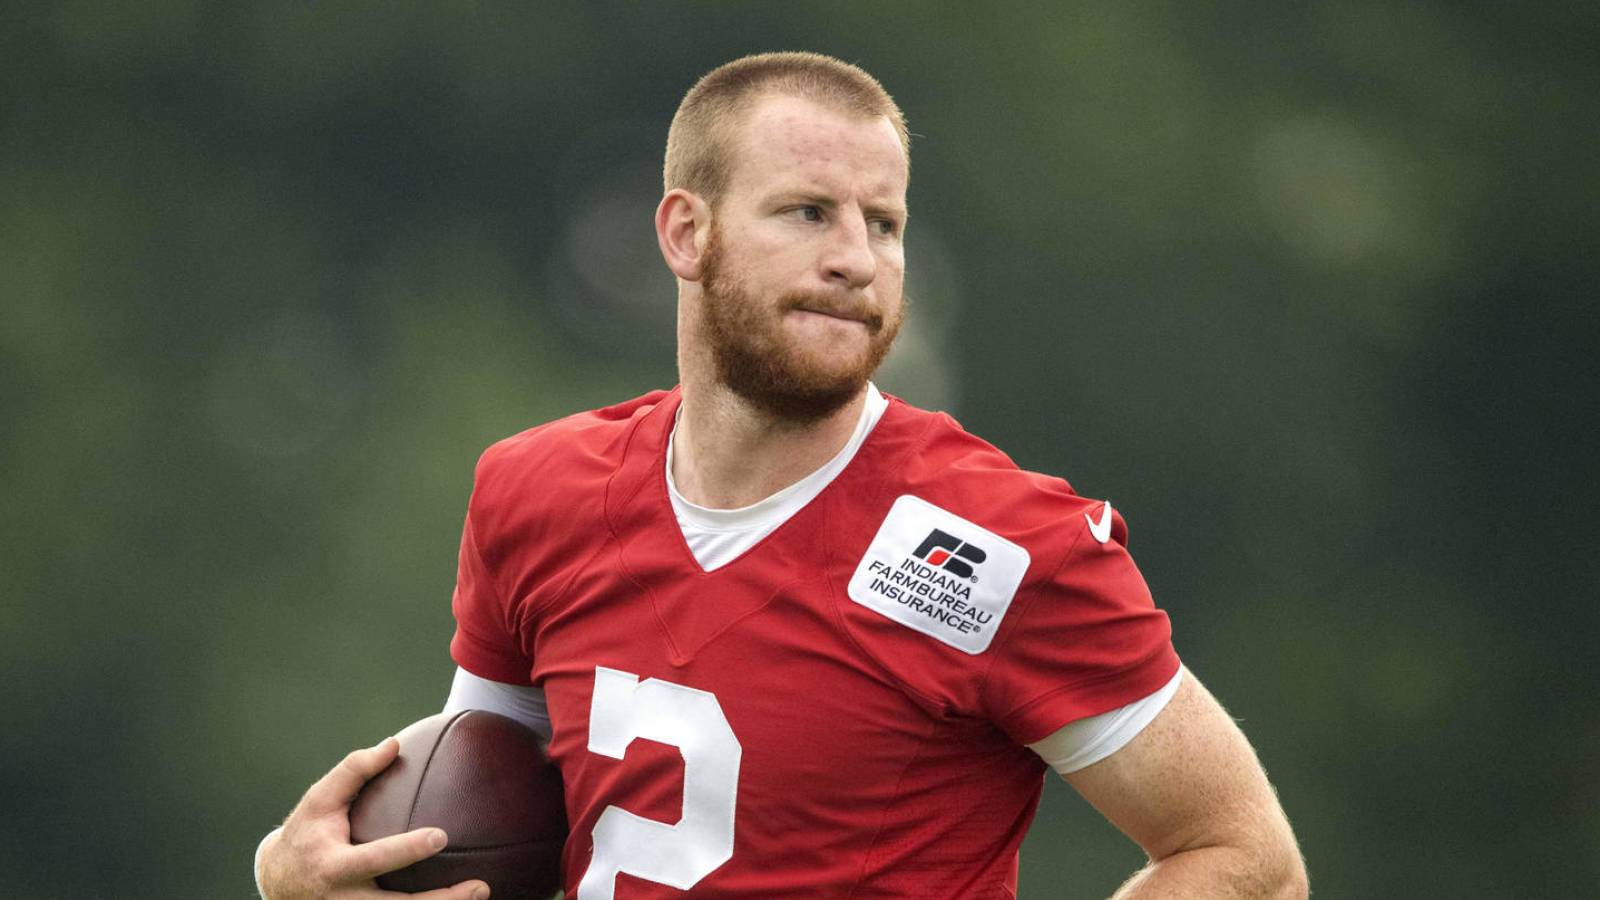 Carson Wentz to undergo foot surgery and miss up to 12 weeks